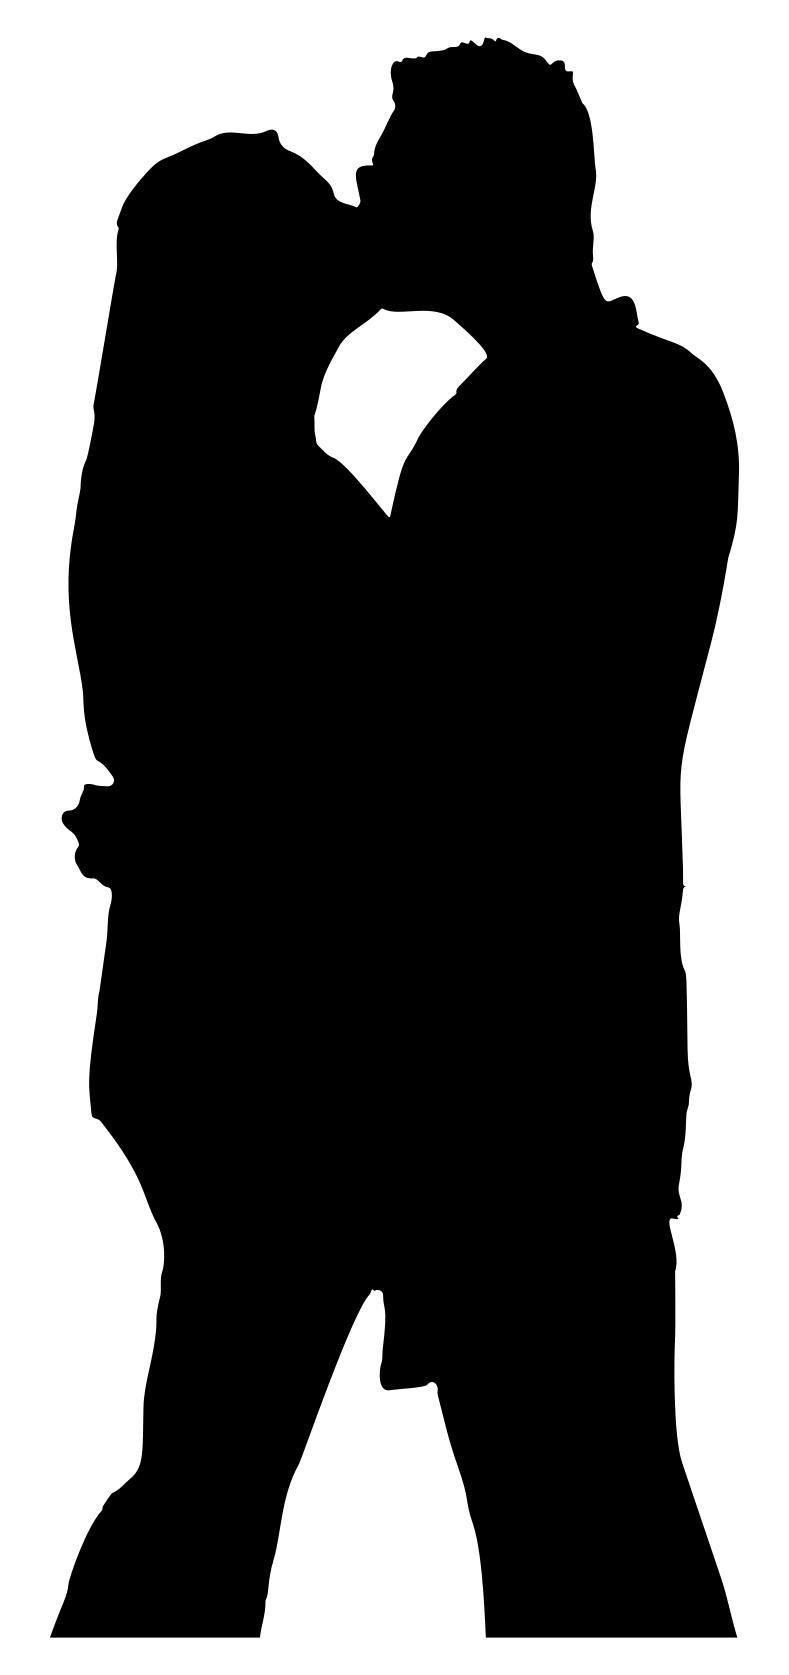 Man And Woman Hugging Silhouette